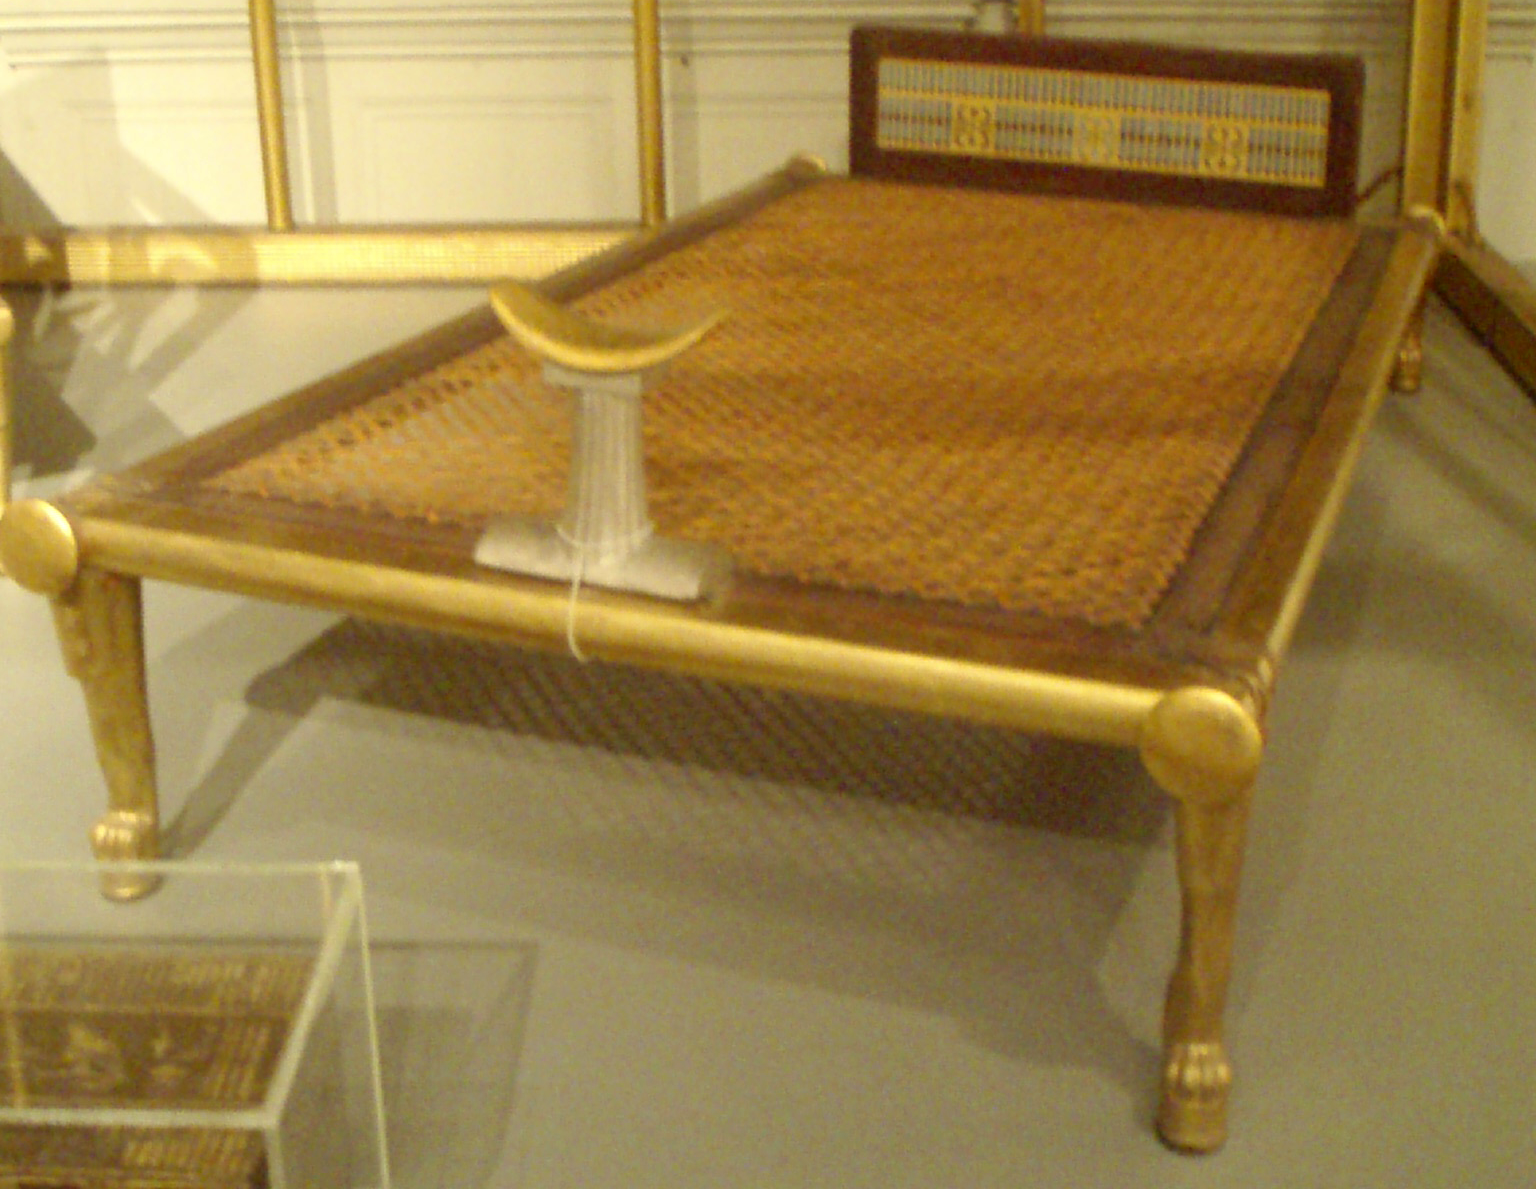 Ancient egyptian table - Ancient Egyptian Bed With A Curved Alabaster Headrest Standing Where We Would Put A Pillow